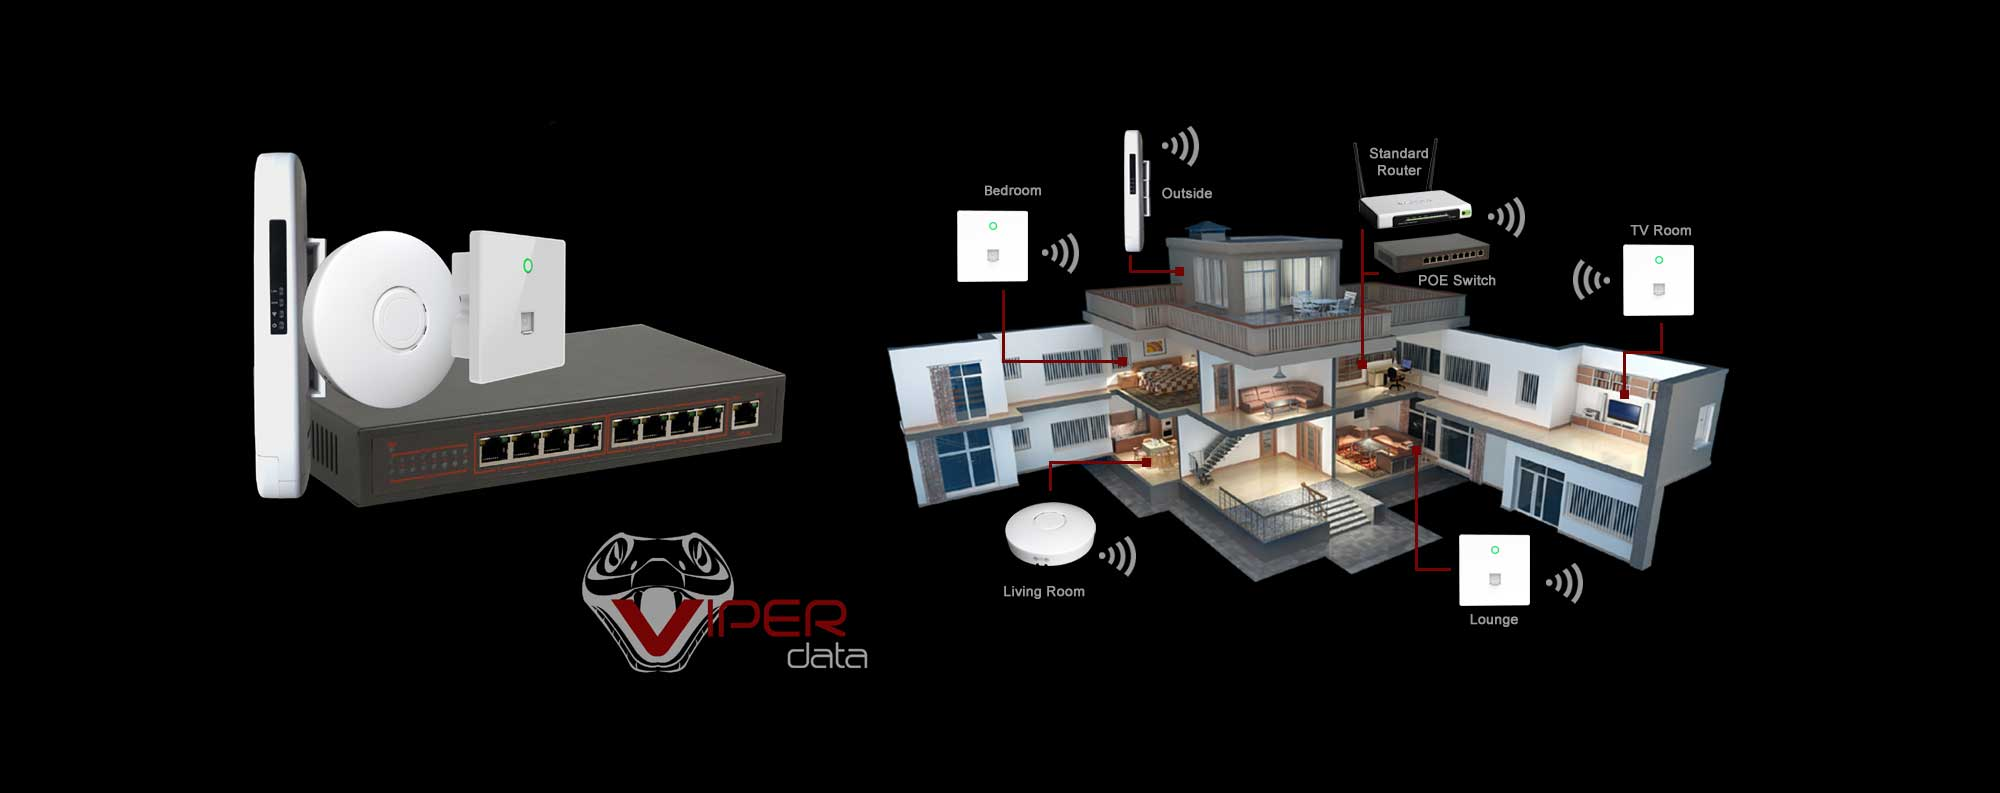 Viper Data - In-wall access points